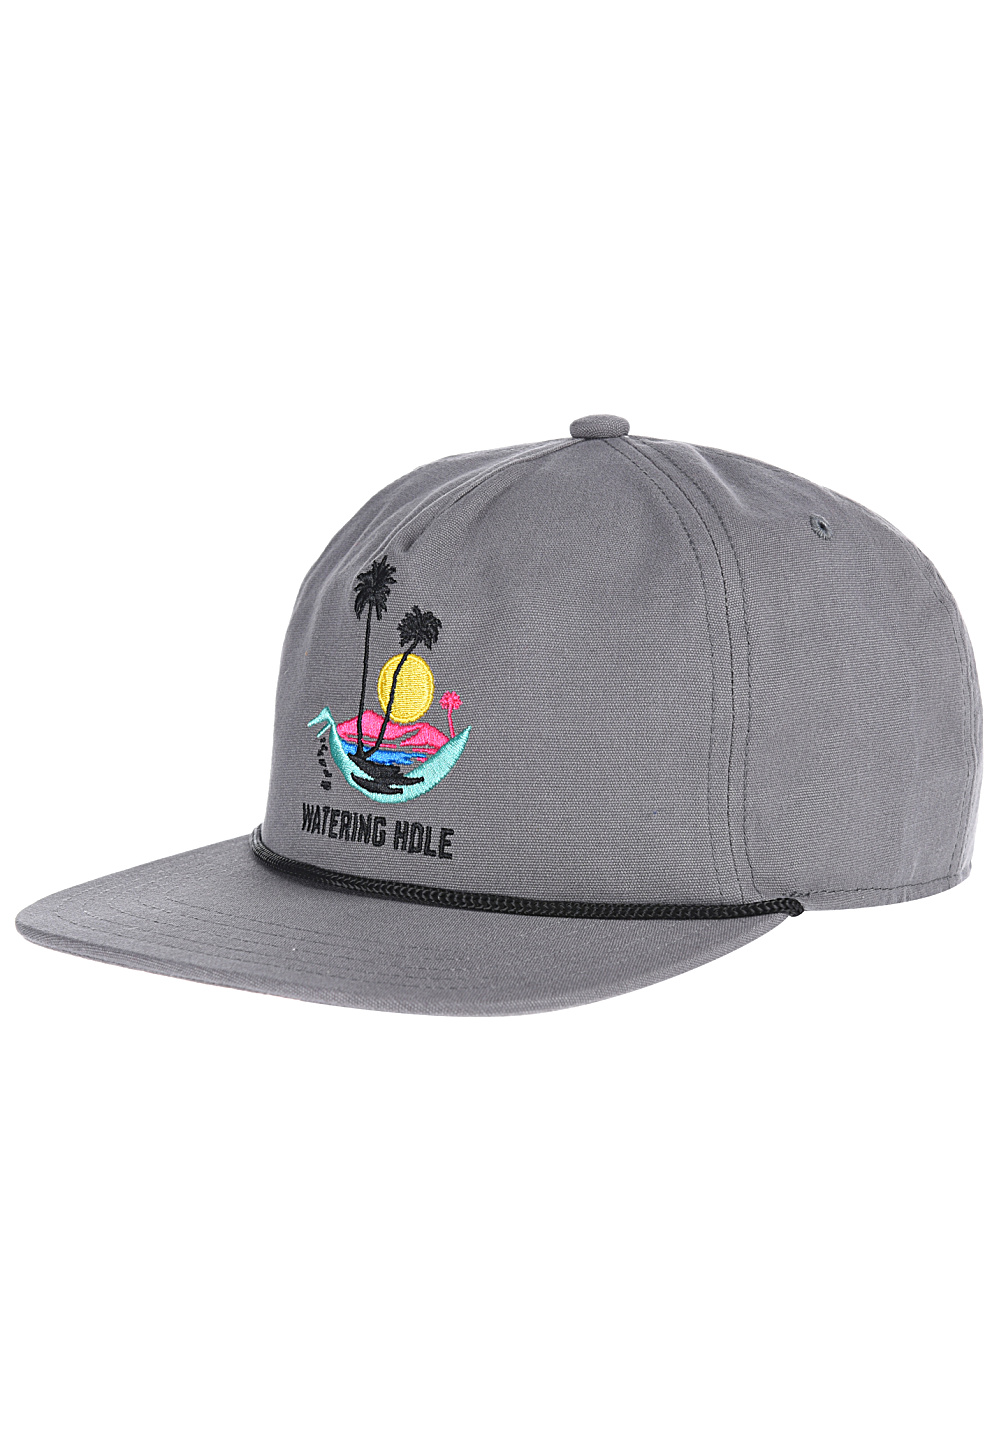 b838a73ce61 Coal The Great Outdoors - Cap for Men - Grey - Planet Sports